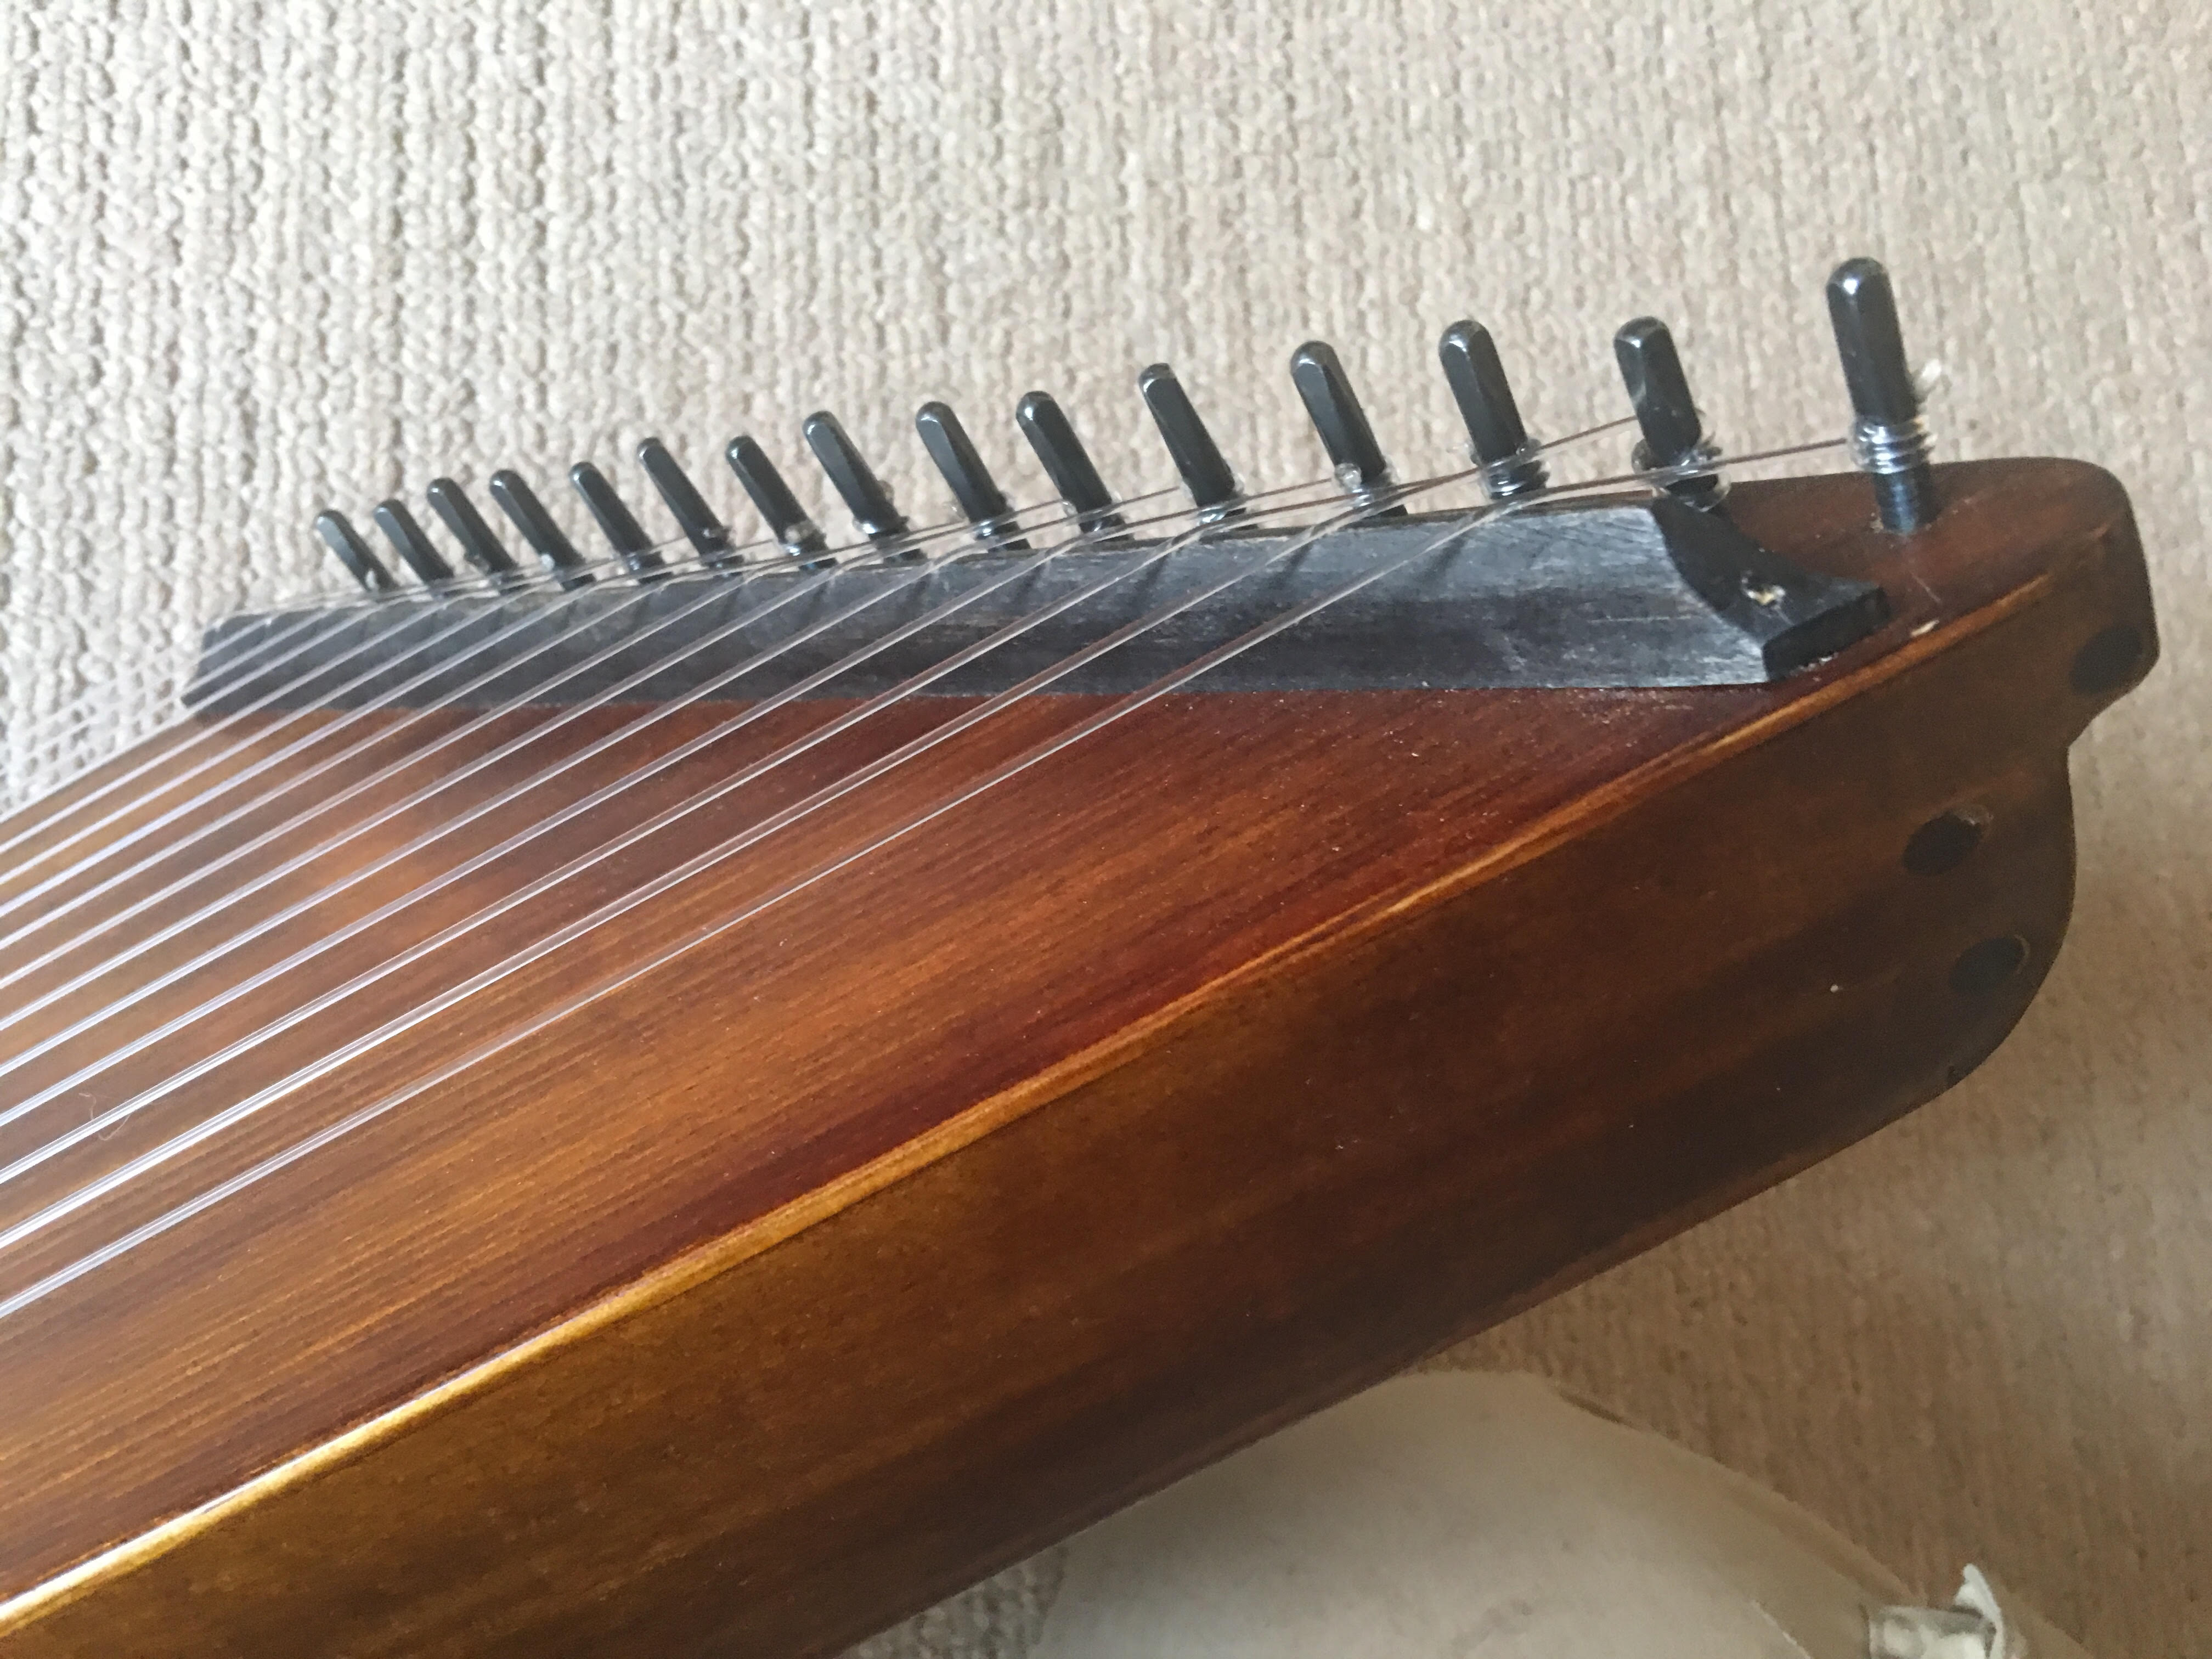 fluorocarbon stringed psaltery in G